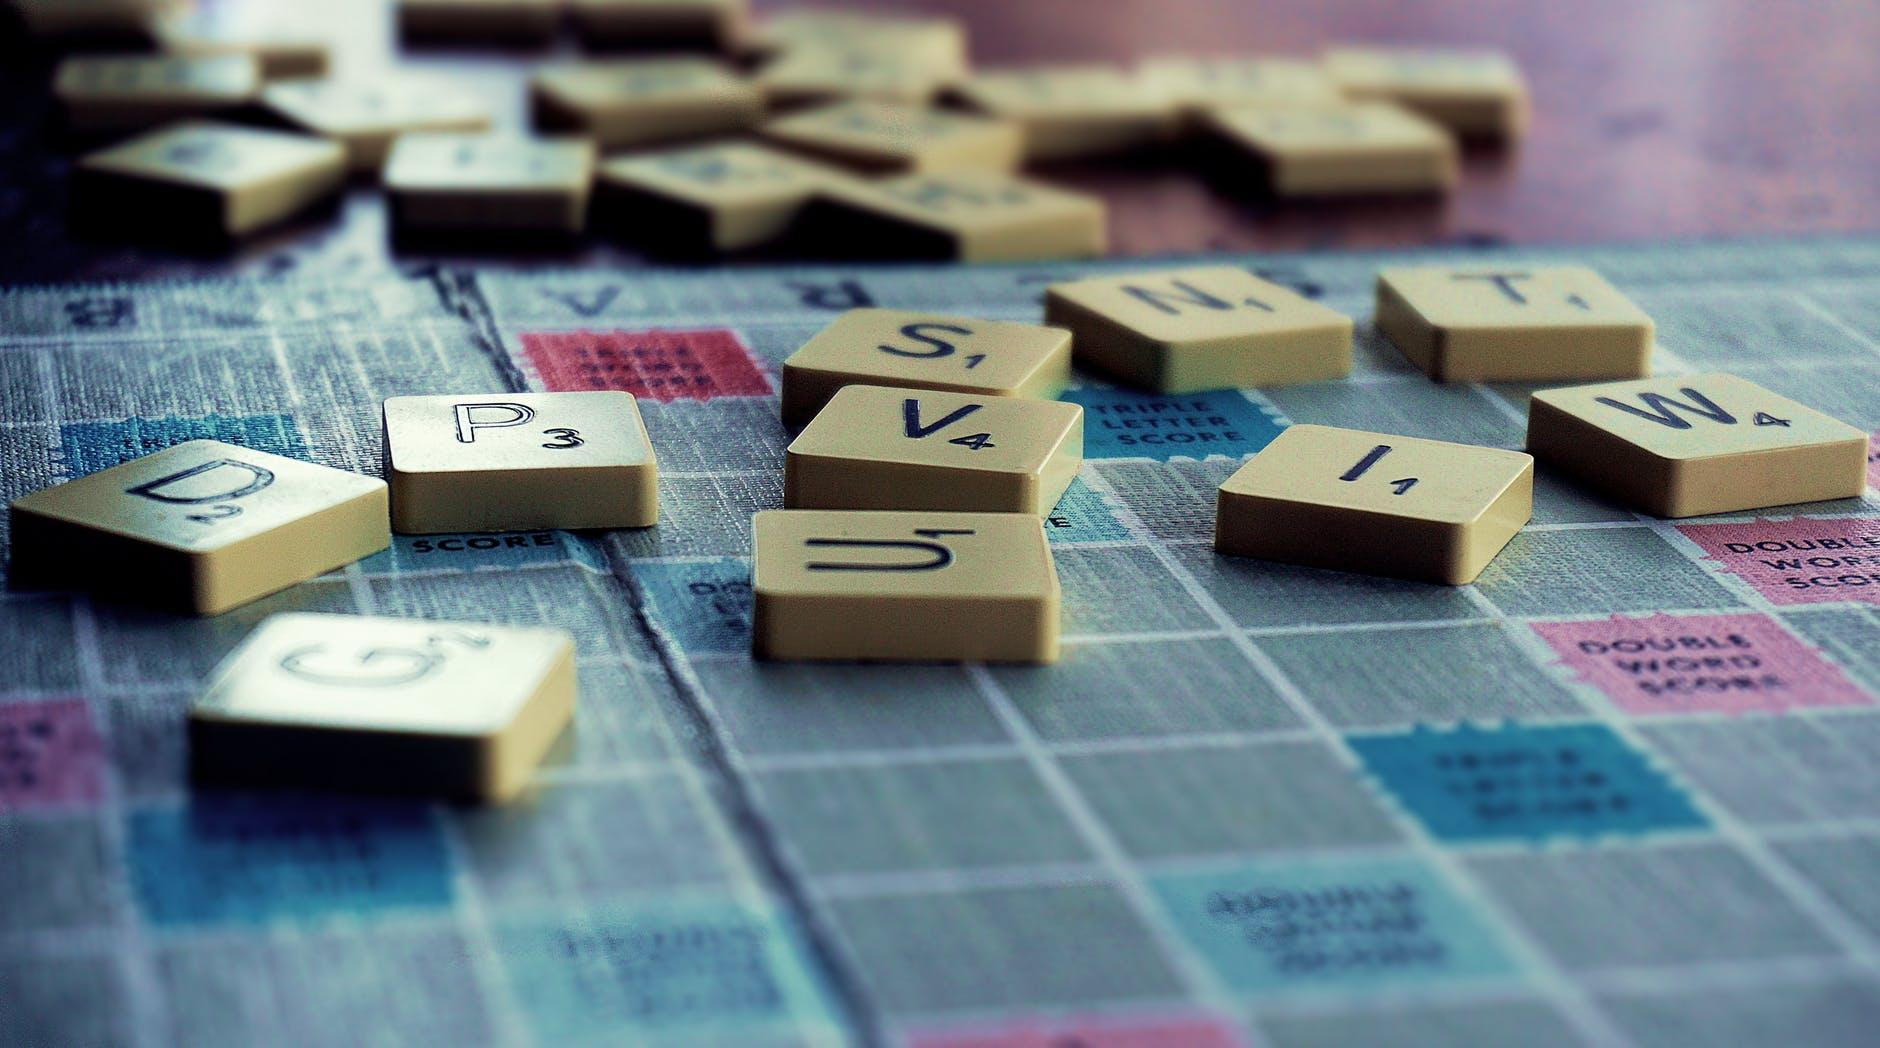 Top 5 word scrabble mobile apps that offer an exception Scrabble experience